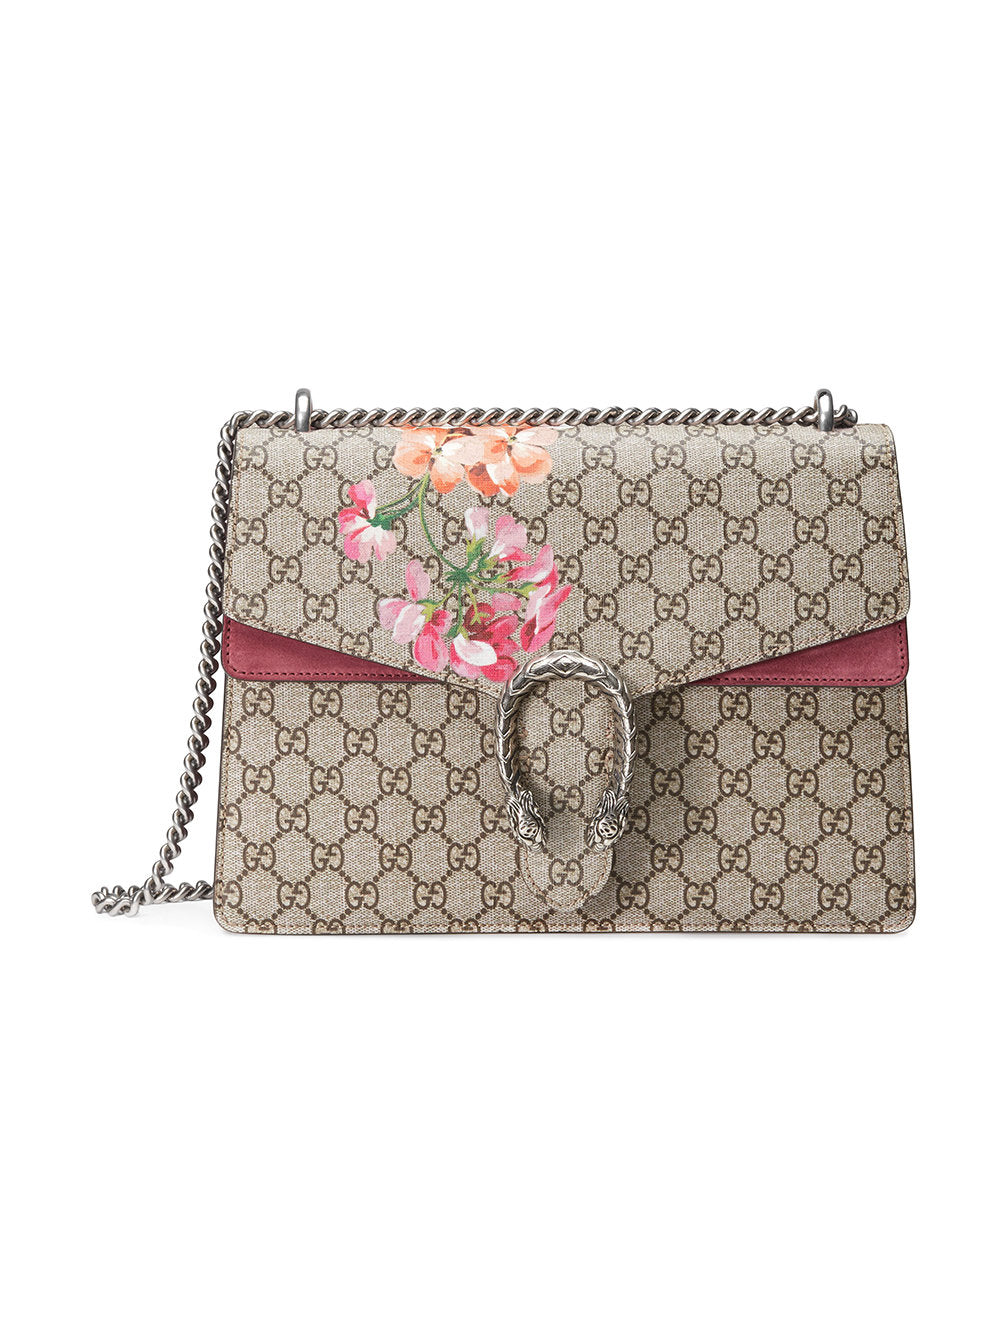 Gucci Dionysus Handbag Blooms Print GG Coated Canvas Medium We Offer You    1 0fb4f8098